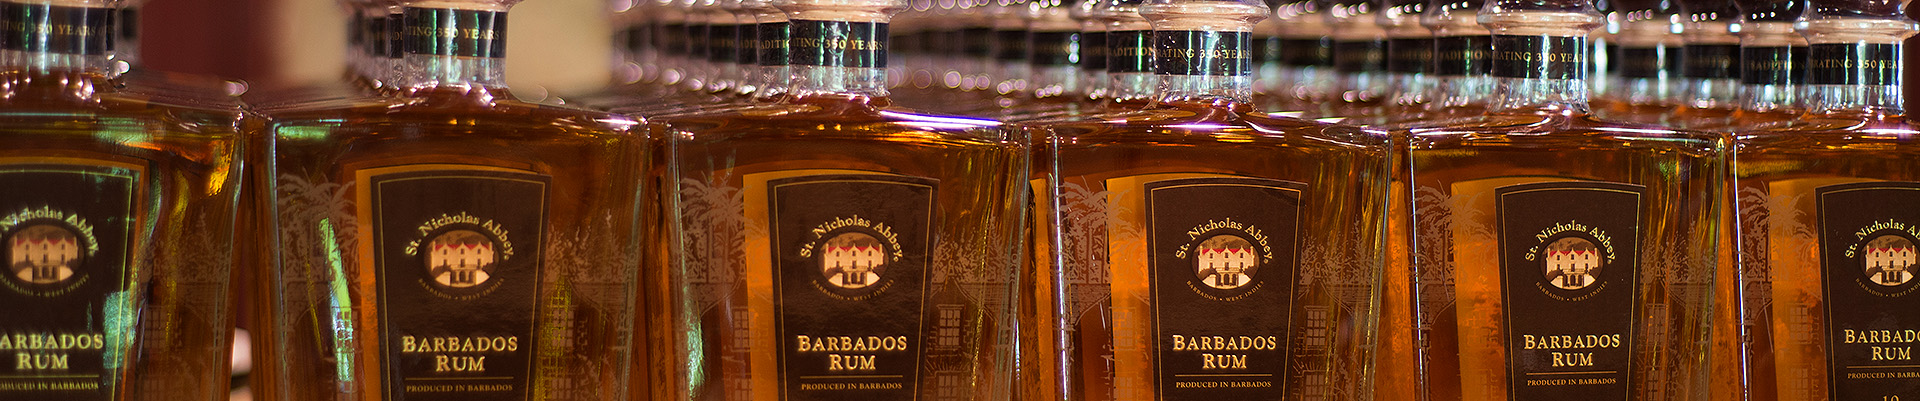 Our Rums - RUM OurRumsHeader 1920x400